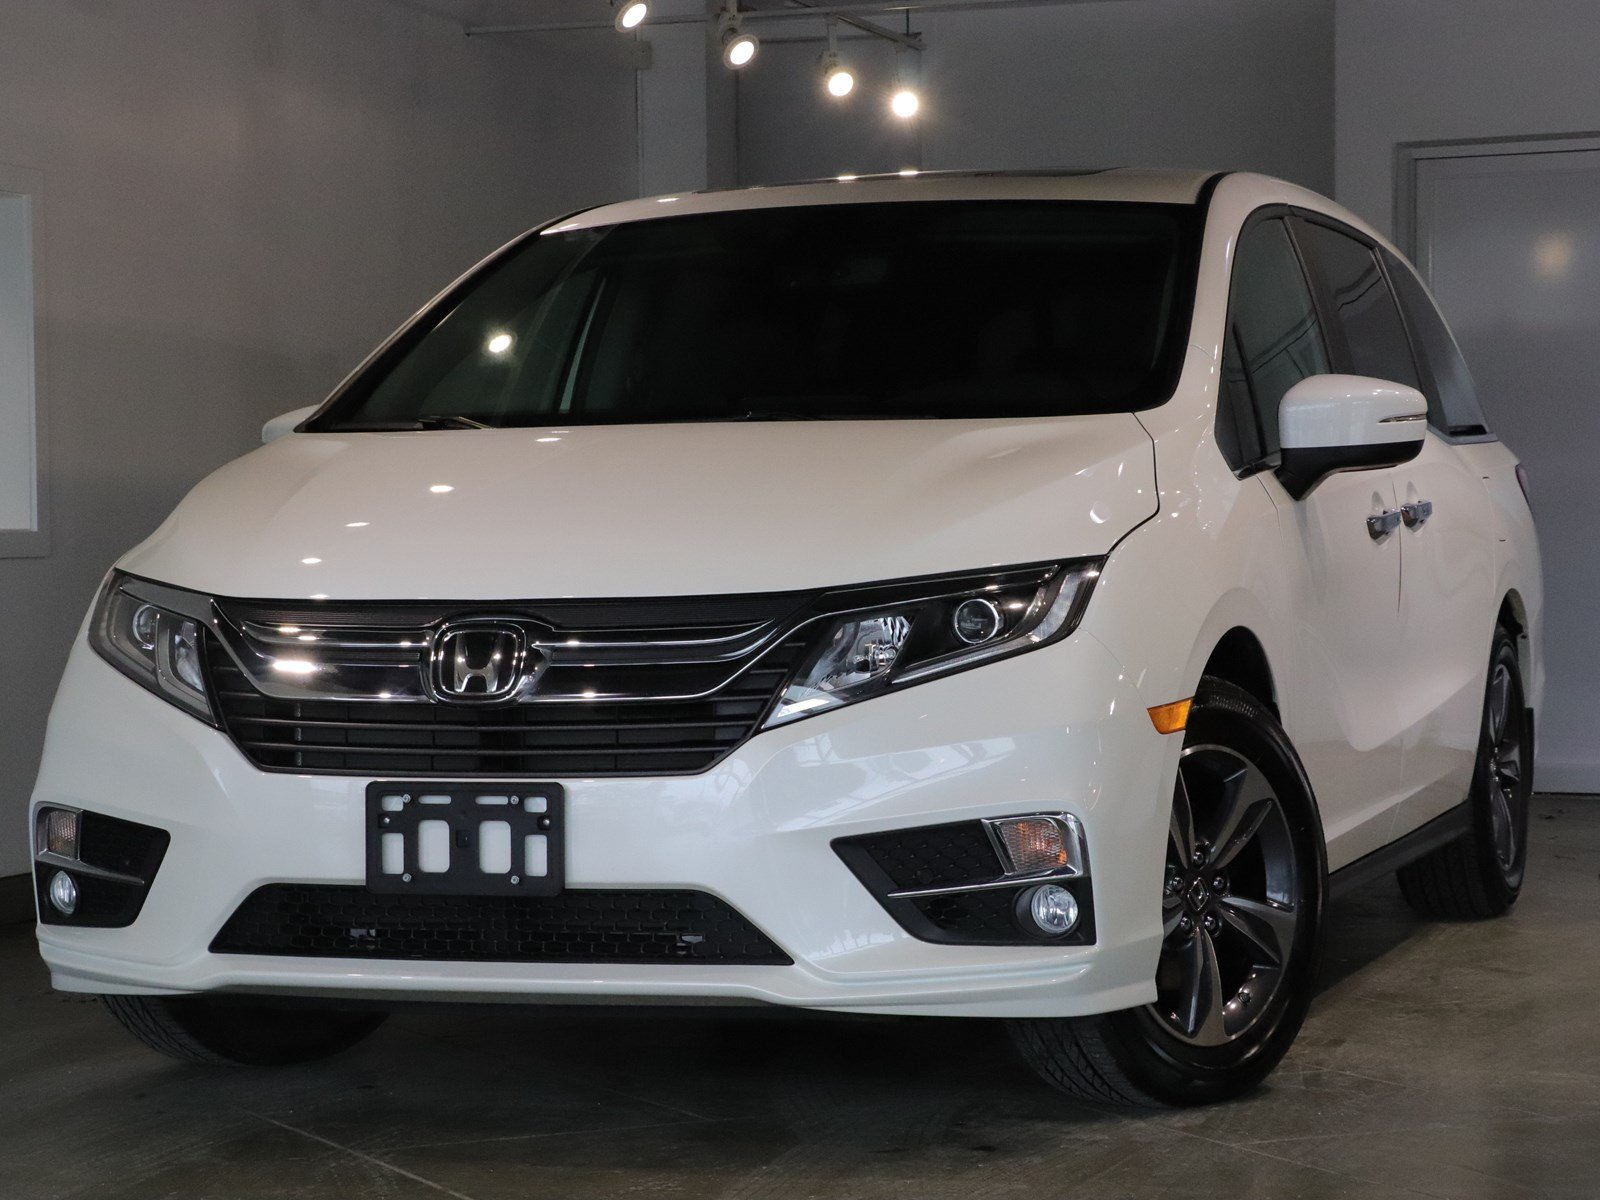 Photo Pre-Owned 2018 Honda Odyssey EX-L - THE ODYSSEY OF MINIVANS - ROAD TRIP READY FWD Mini-van, Passenger